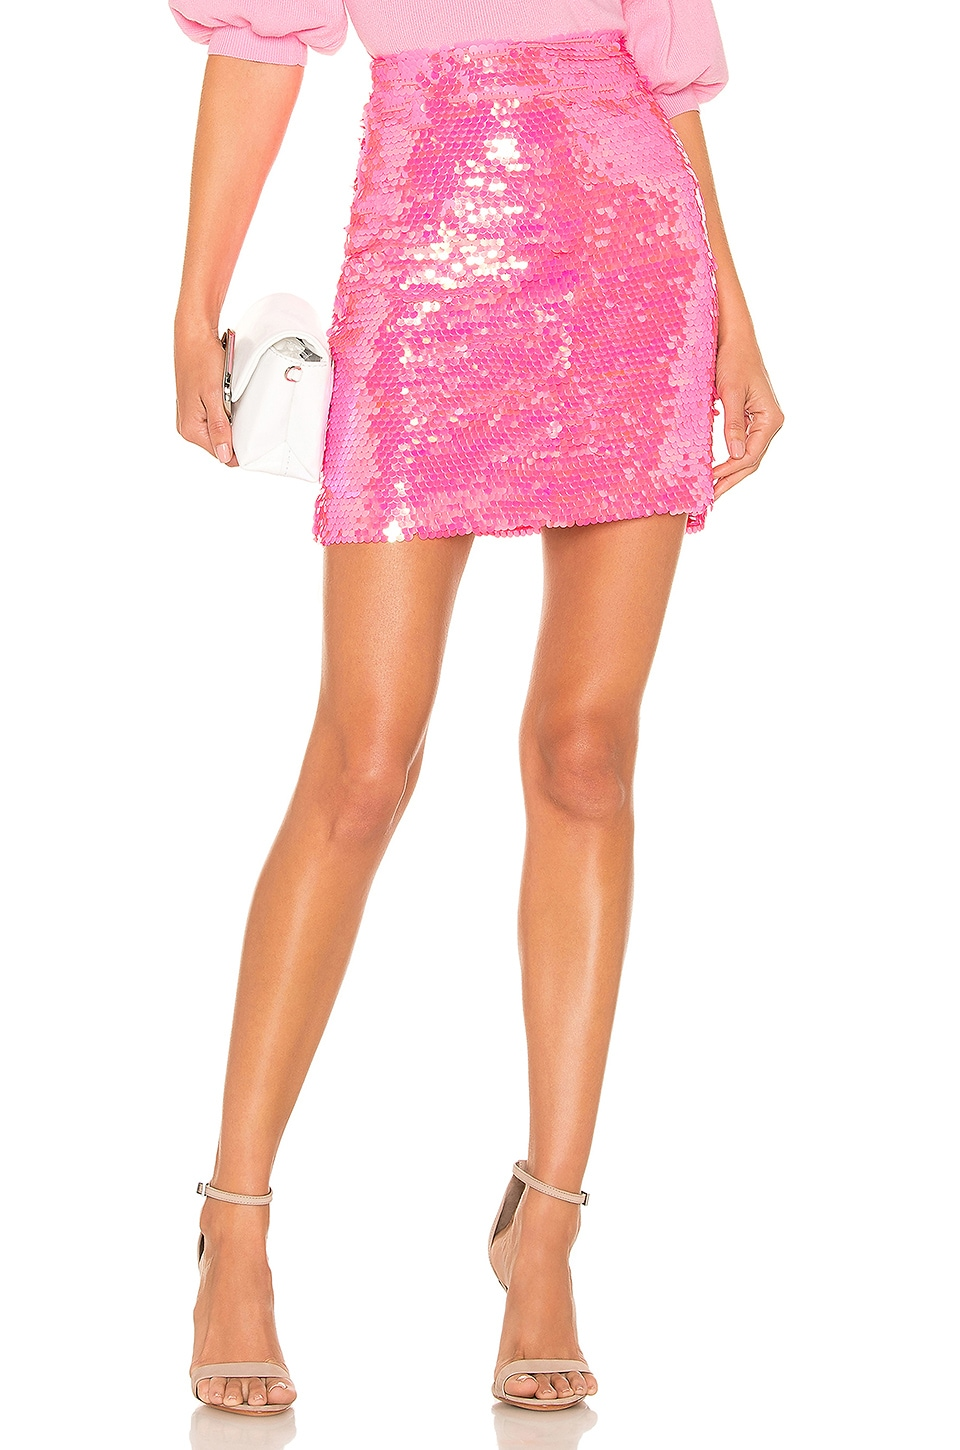 Milly MILLY MODERN MINI SKIRT IN PINK.